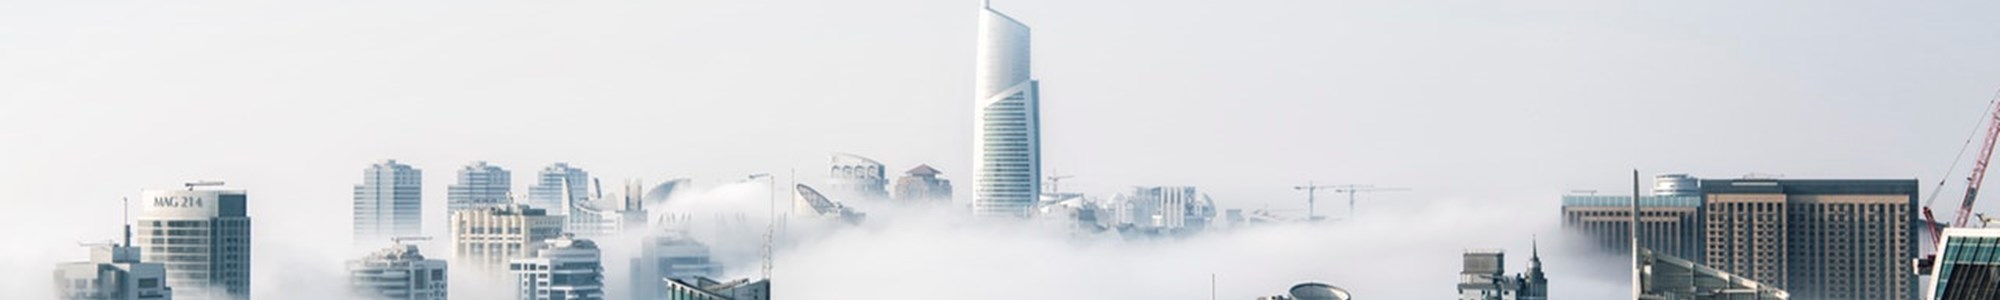 Clouds covering a city